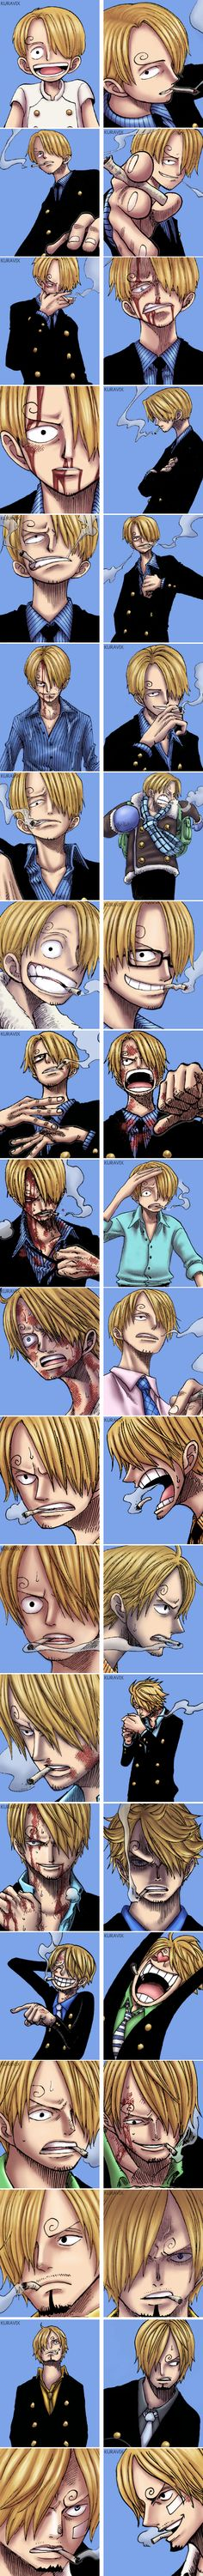 Happy Birthday Sanji! Source: [http://kuravix.tumblr.com/post/112495522425/happy-birthday-to-the-first-rate-cook-of-the-sea]